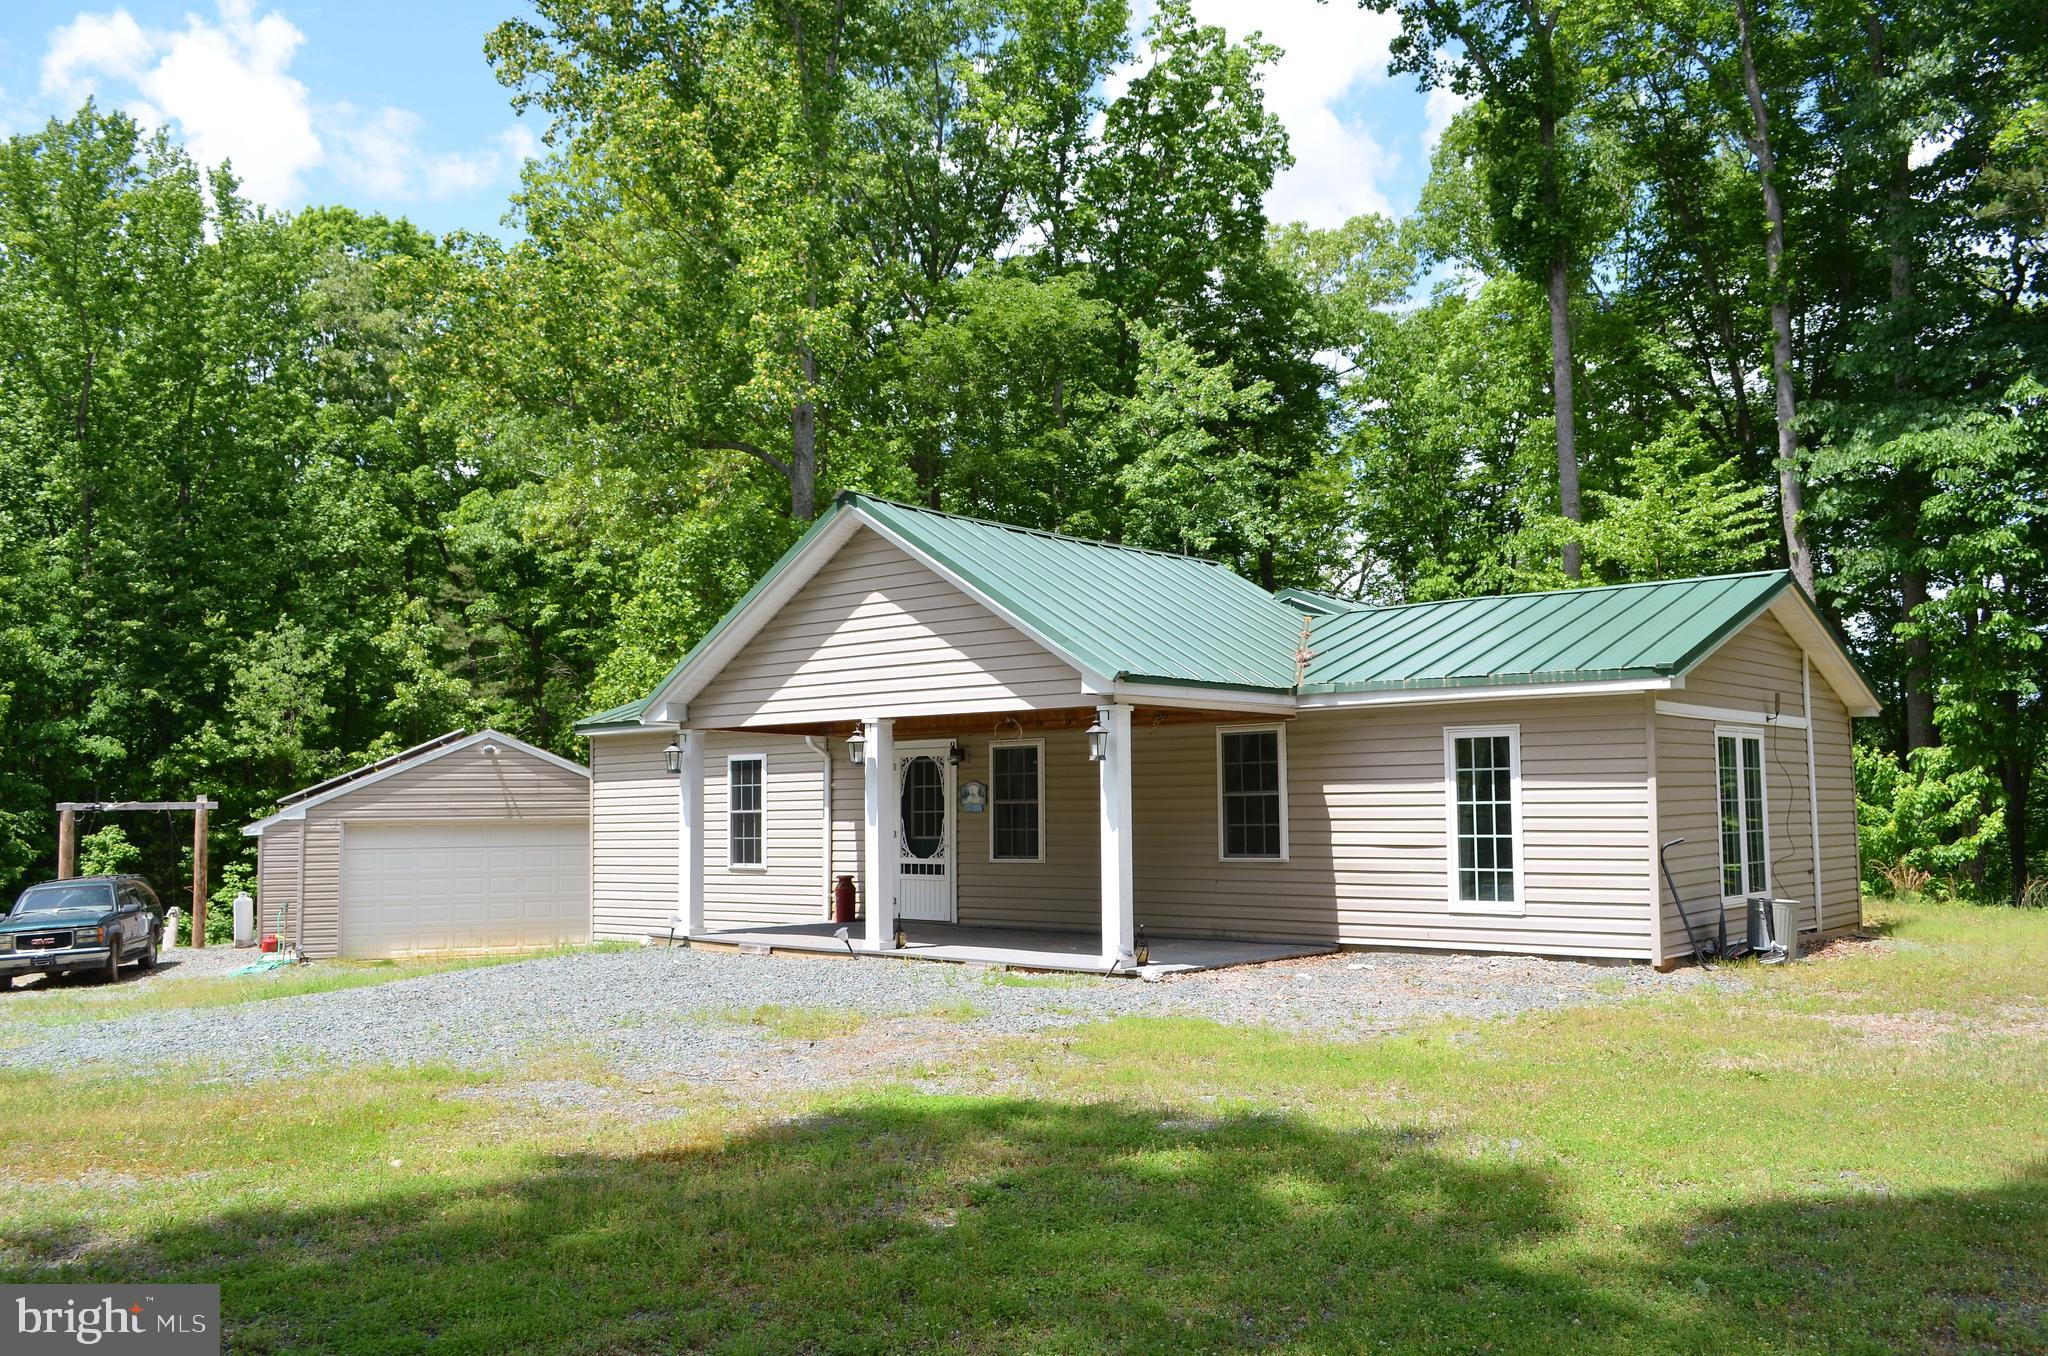 974 RED HILL TRAIL, GORDONSVILLE, VA 22942